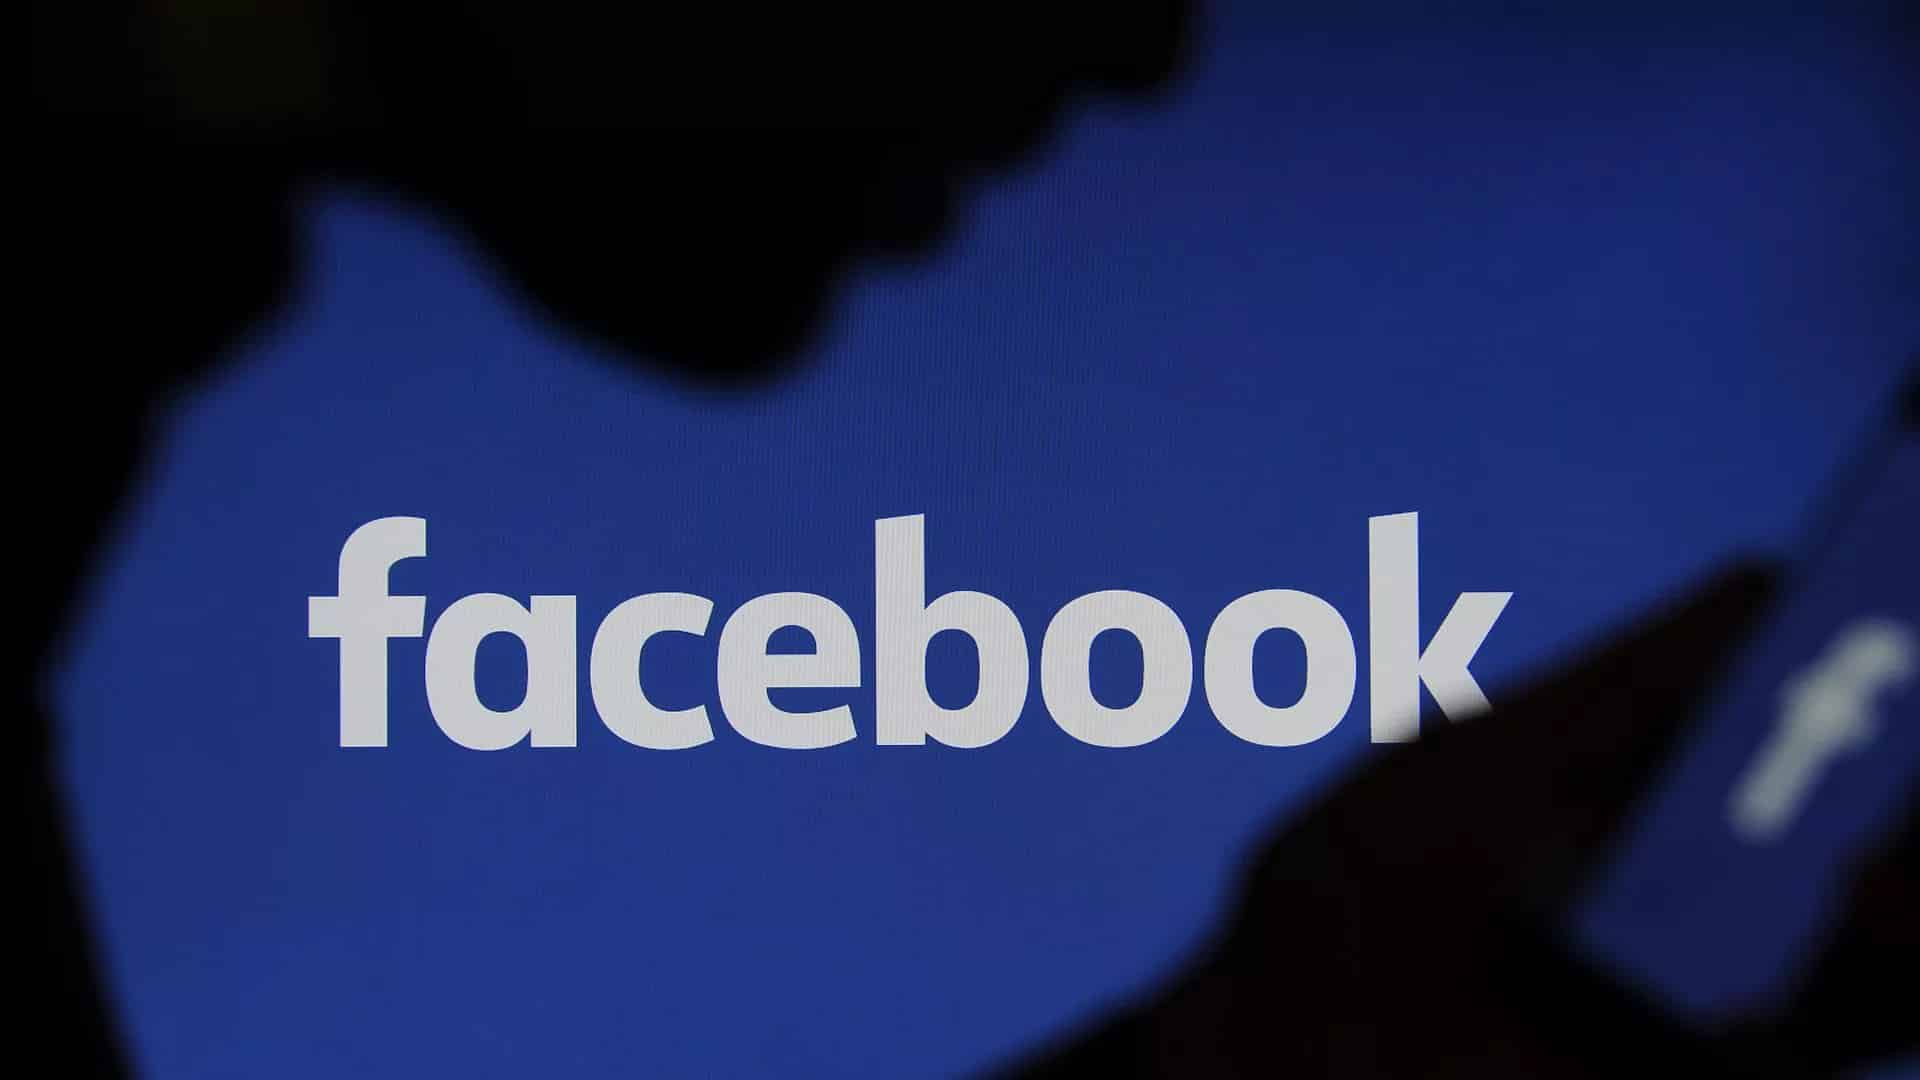 Govt requests for user data up 23% globally in H1 2020, India 2nd in tally: Facebook